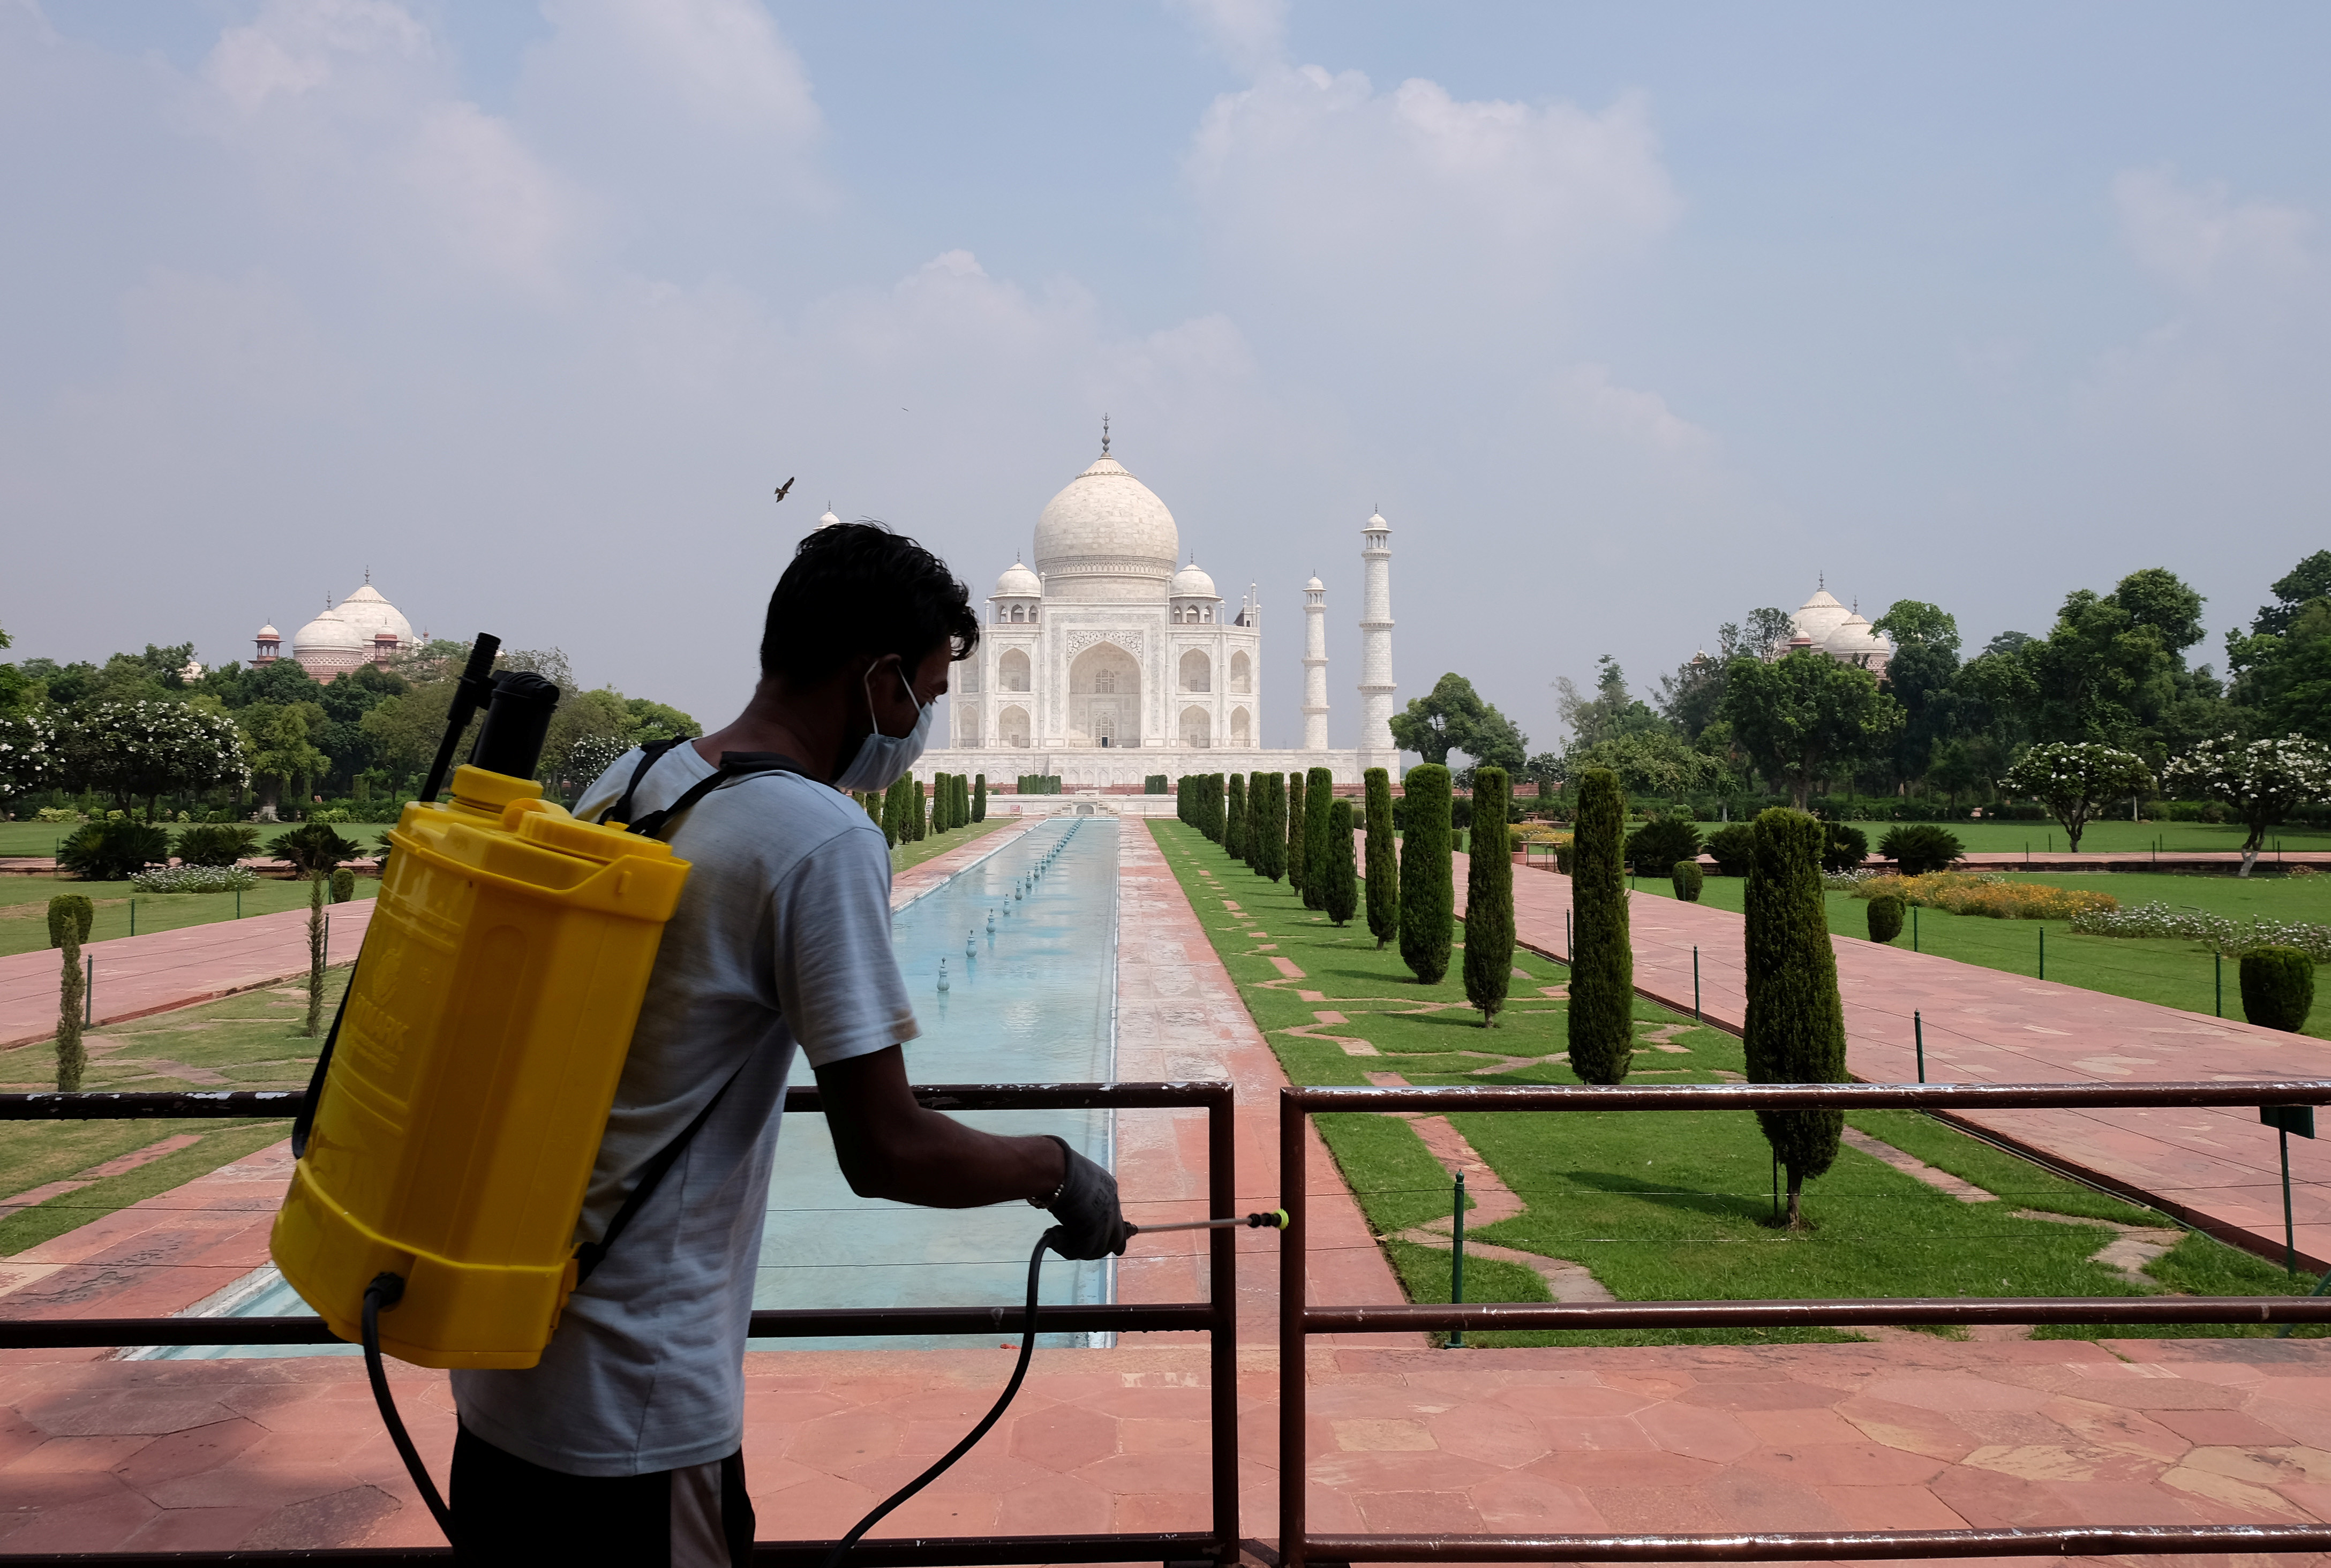 A man sanitizes railings on the Taj Mahal premises after authorities reopened the monument to visitors, amidst the coronavirus disease (COVID-19) outbreak, in Agra, India, September 21, 2020.